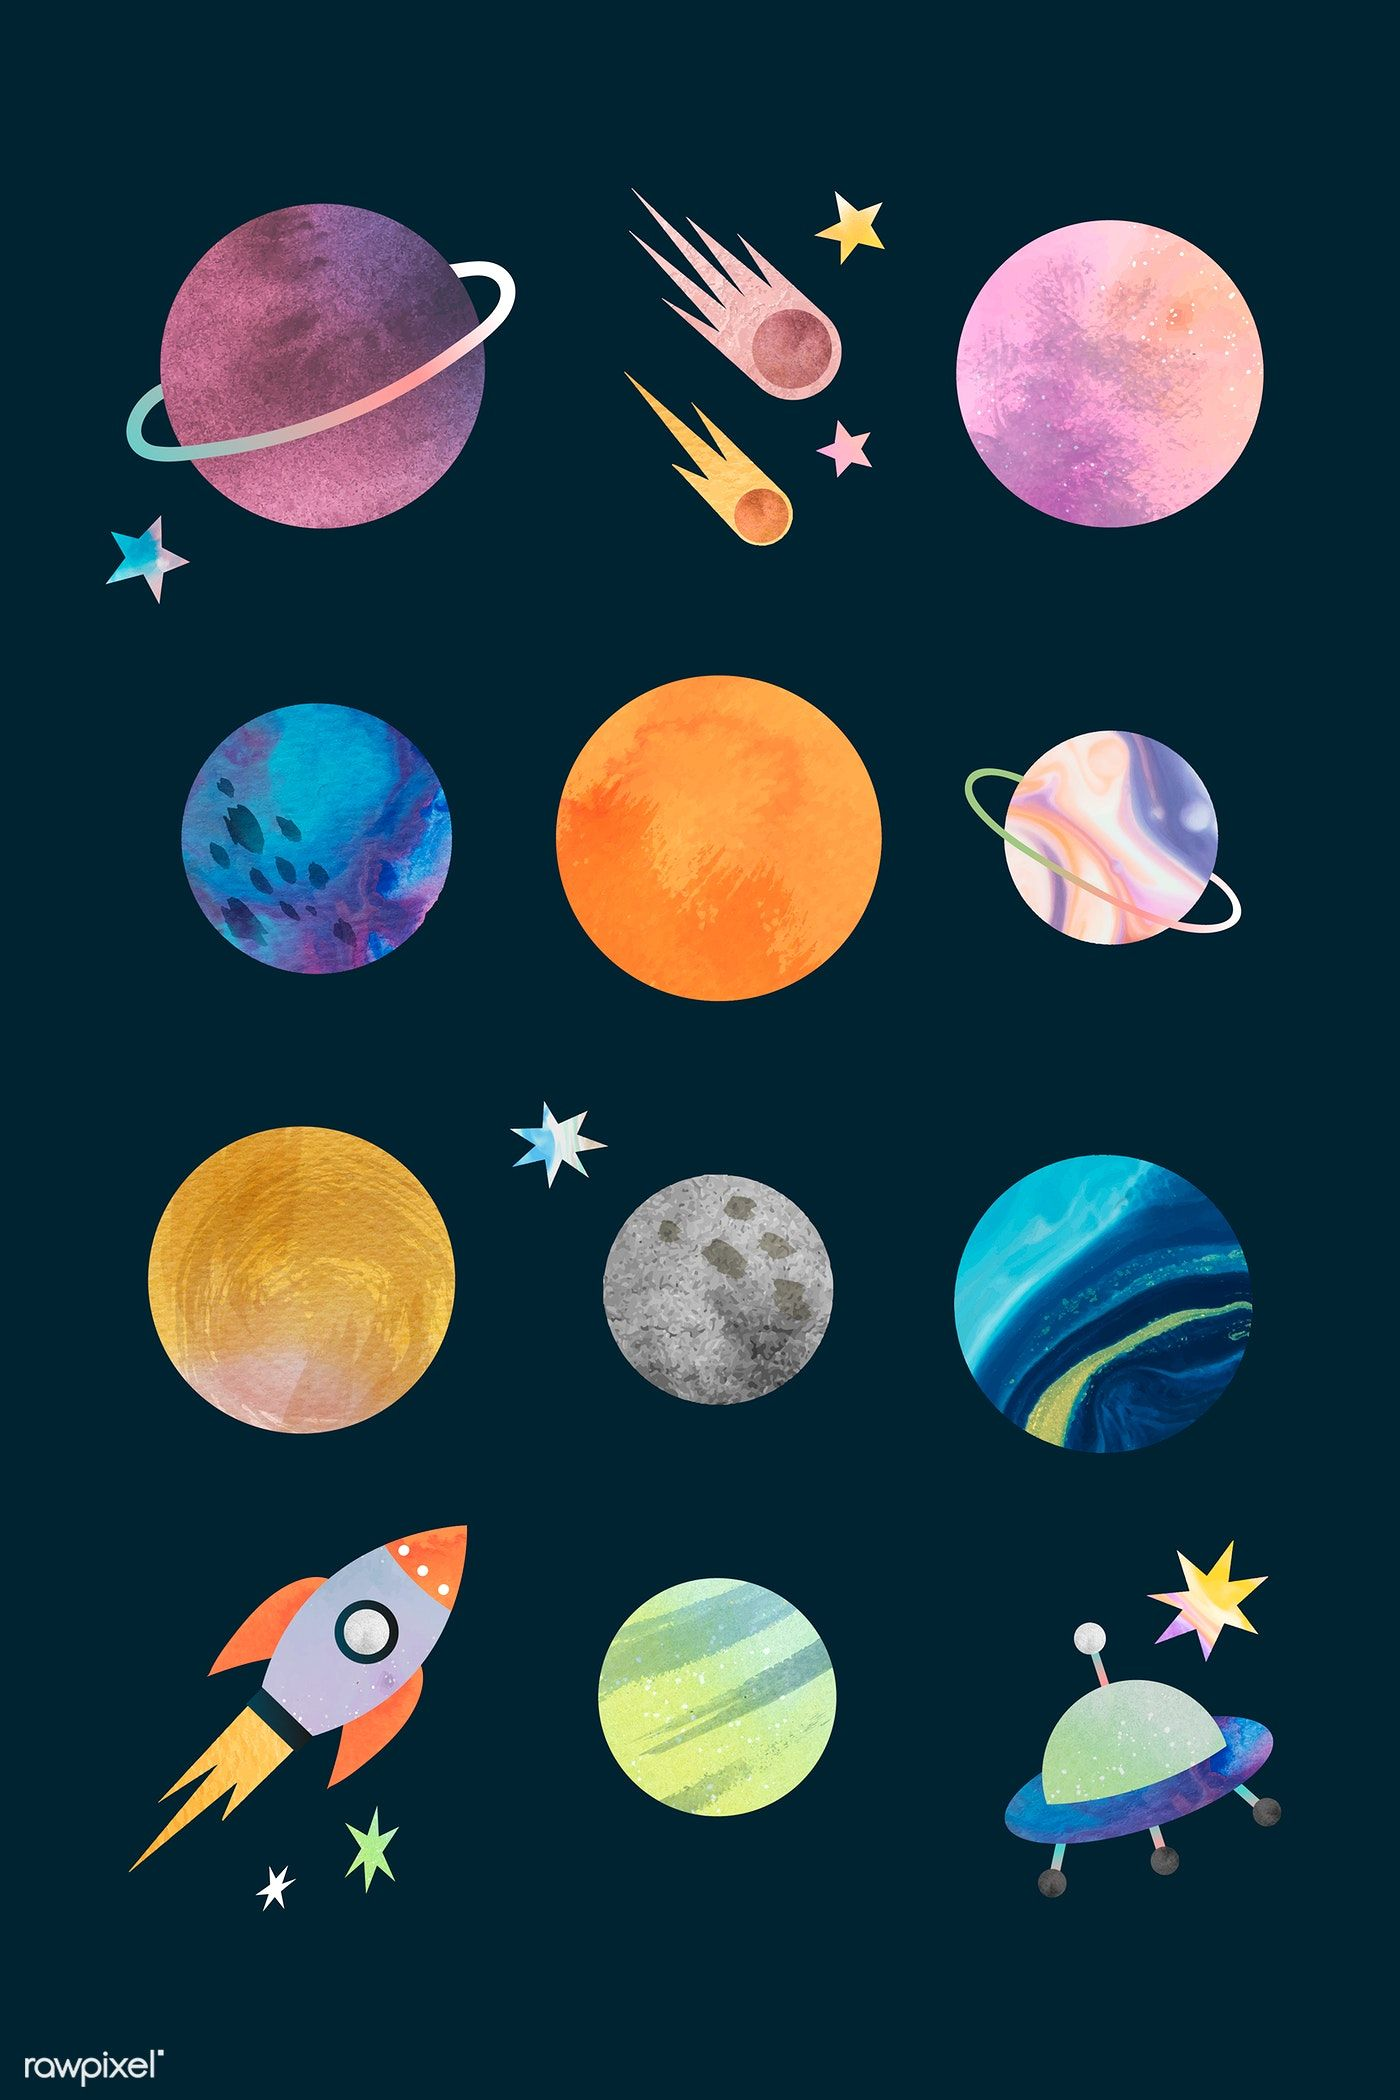 Download Premium Vector Of Colorful Galaxy Watercolor Doodle On Black Watercolor Galaxy Planet Painting Planet Drawing